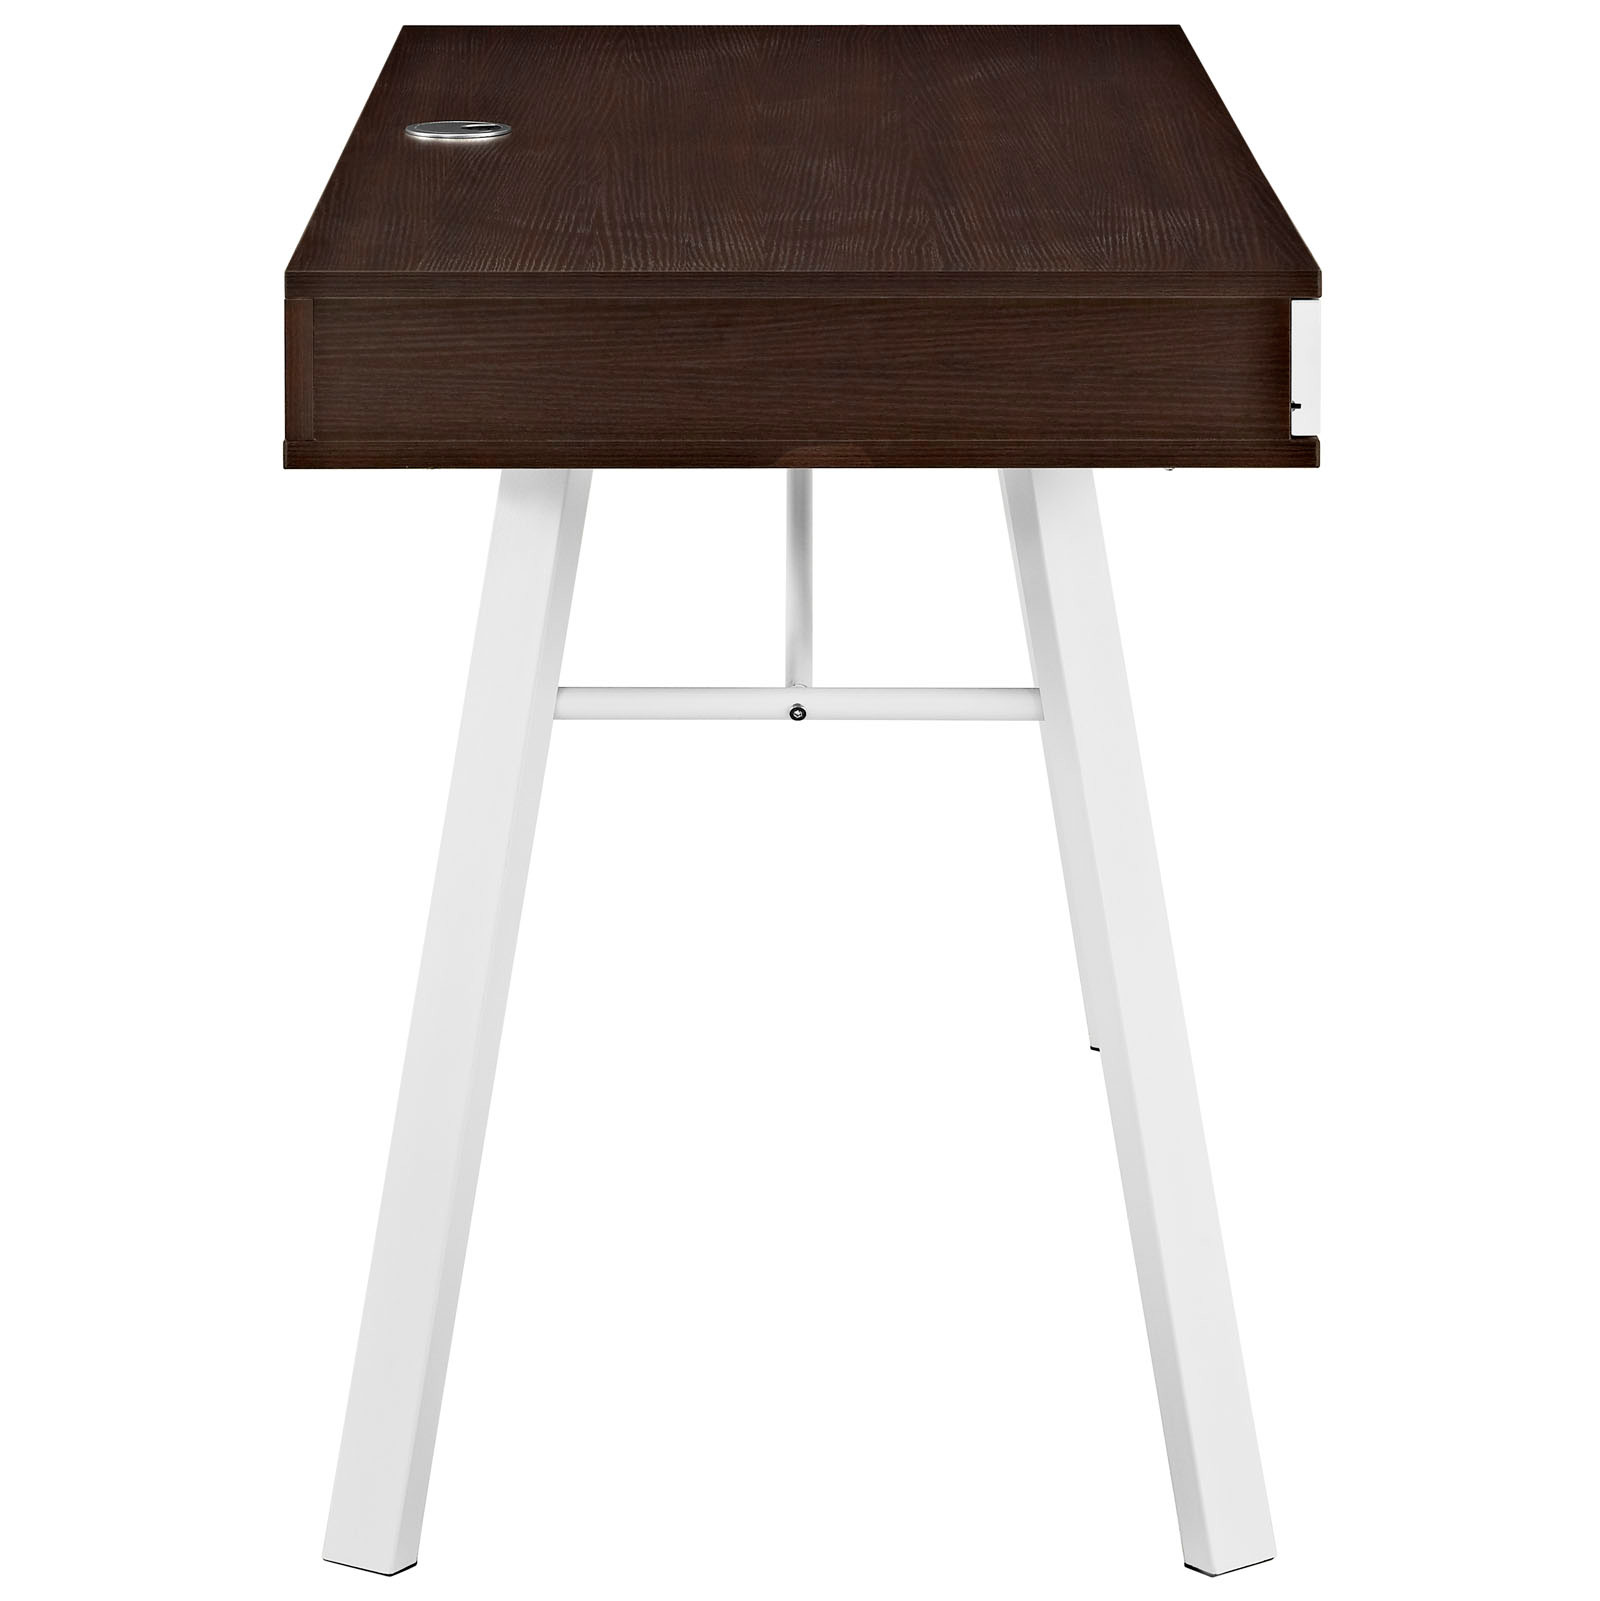 space saving desk from modway side view shown in cherry brown